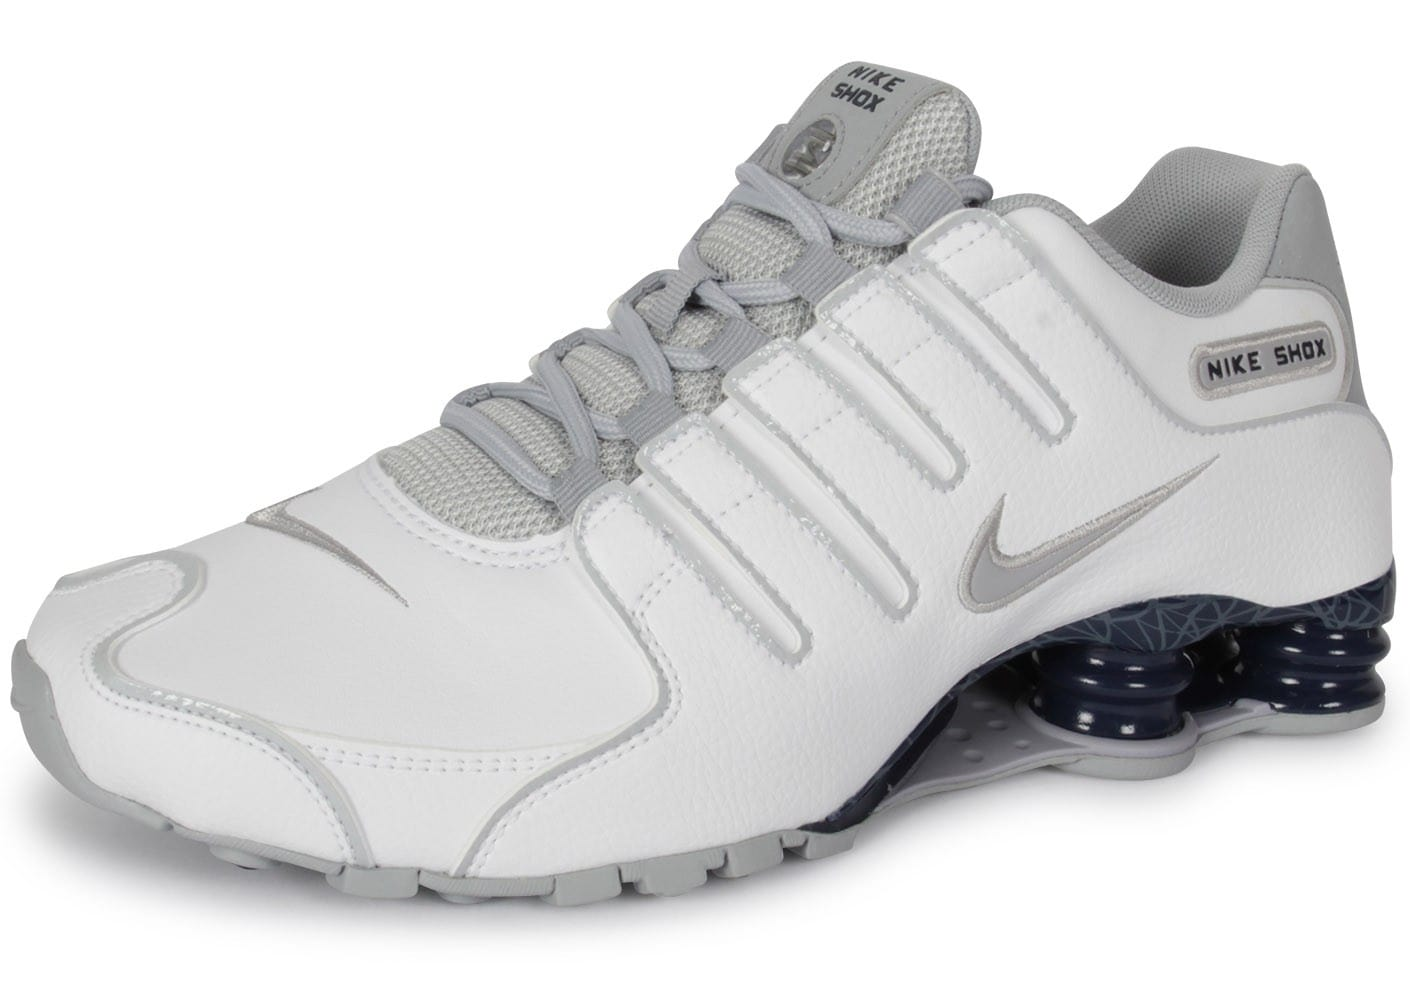 new product 3cc6c e8480 Nike Shox Nz Blanche - Chaussures Baskets homme - Chausport